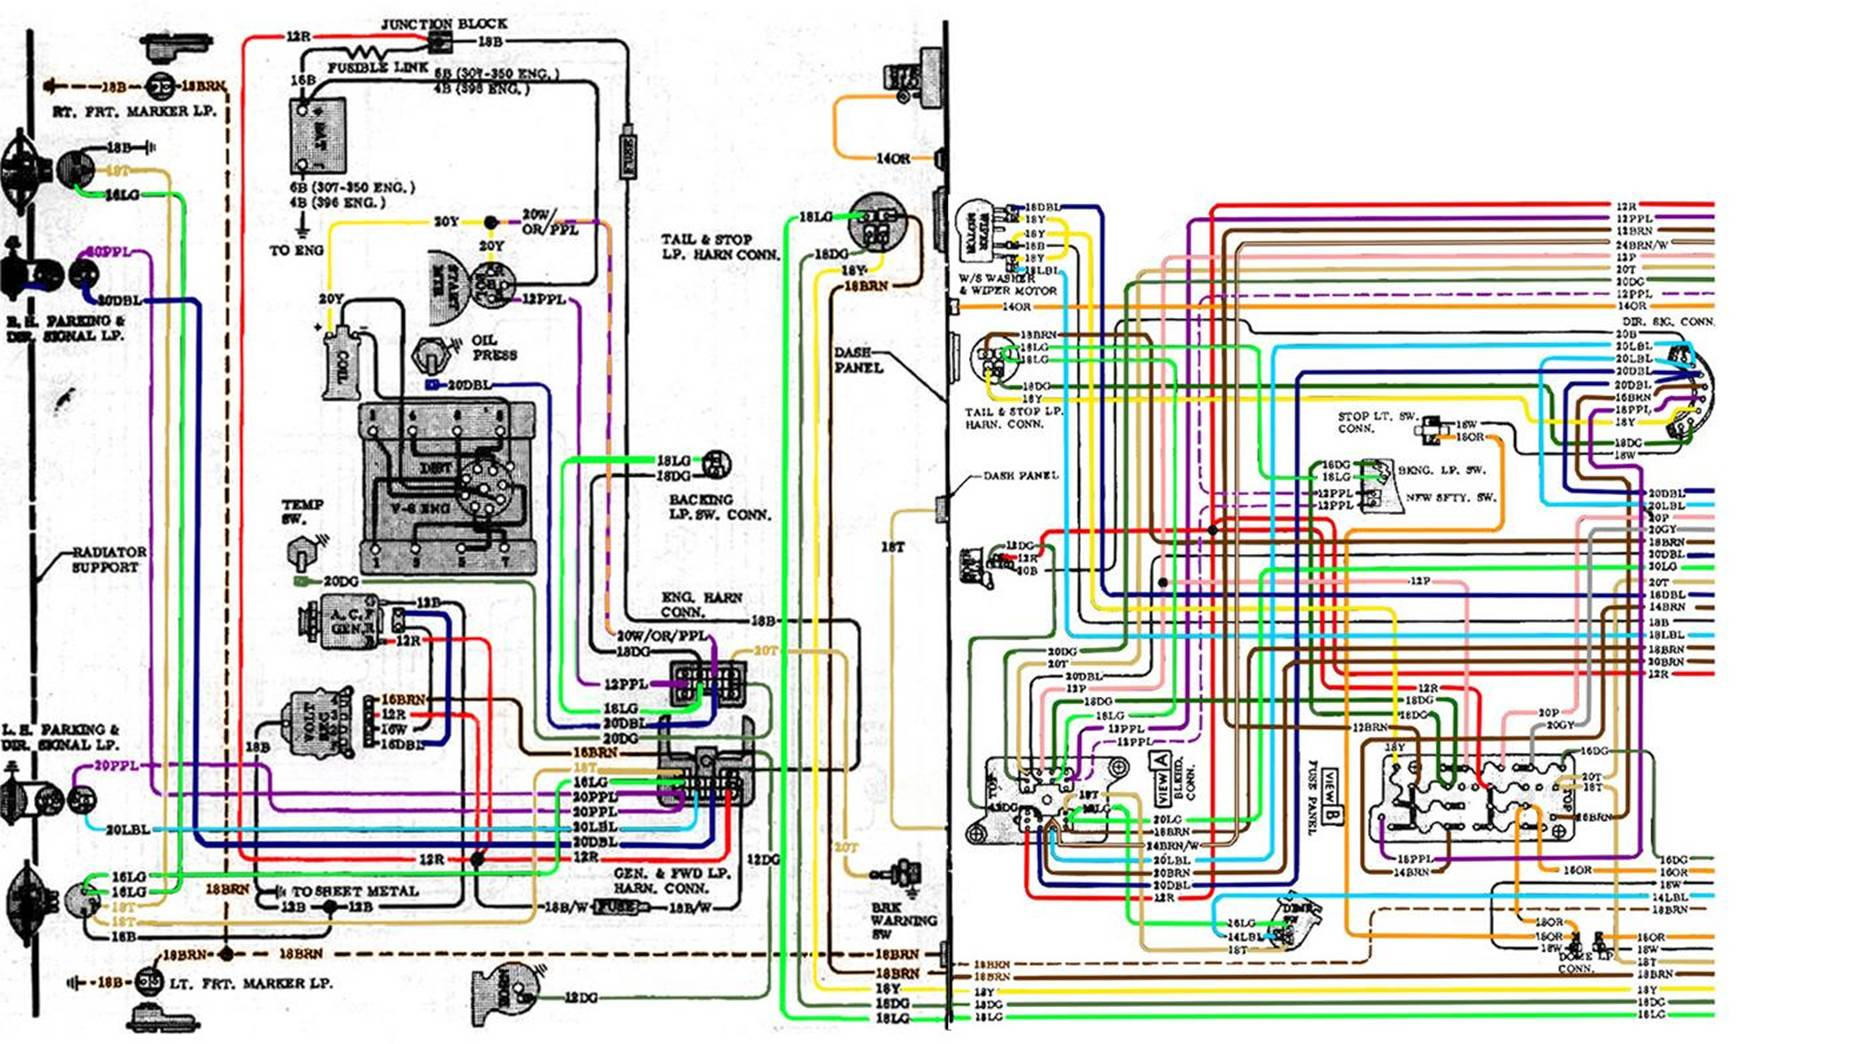 hight resolution of chevy chevelle wiring diagram wiring diagram inside wiring diagram for 1970 chevelle with gauges